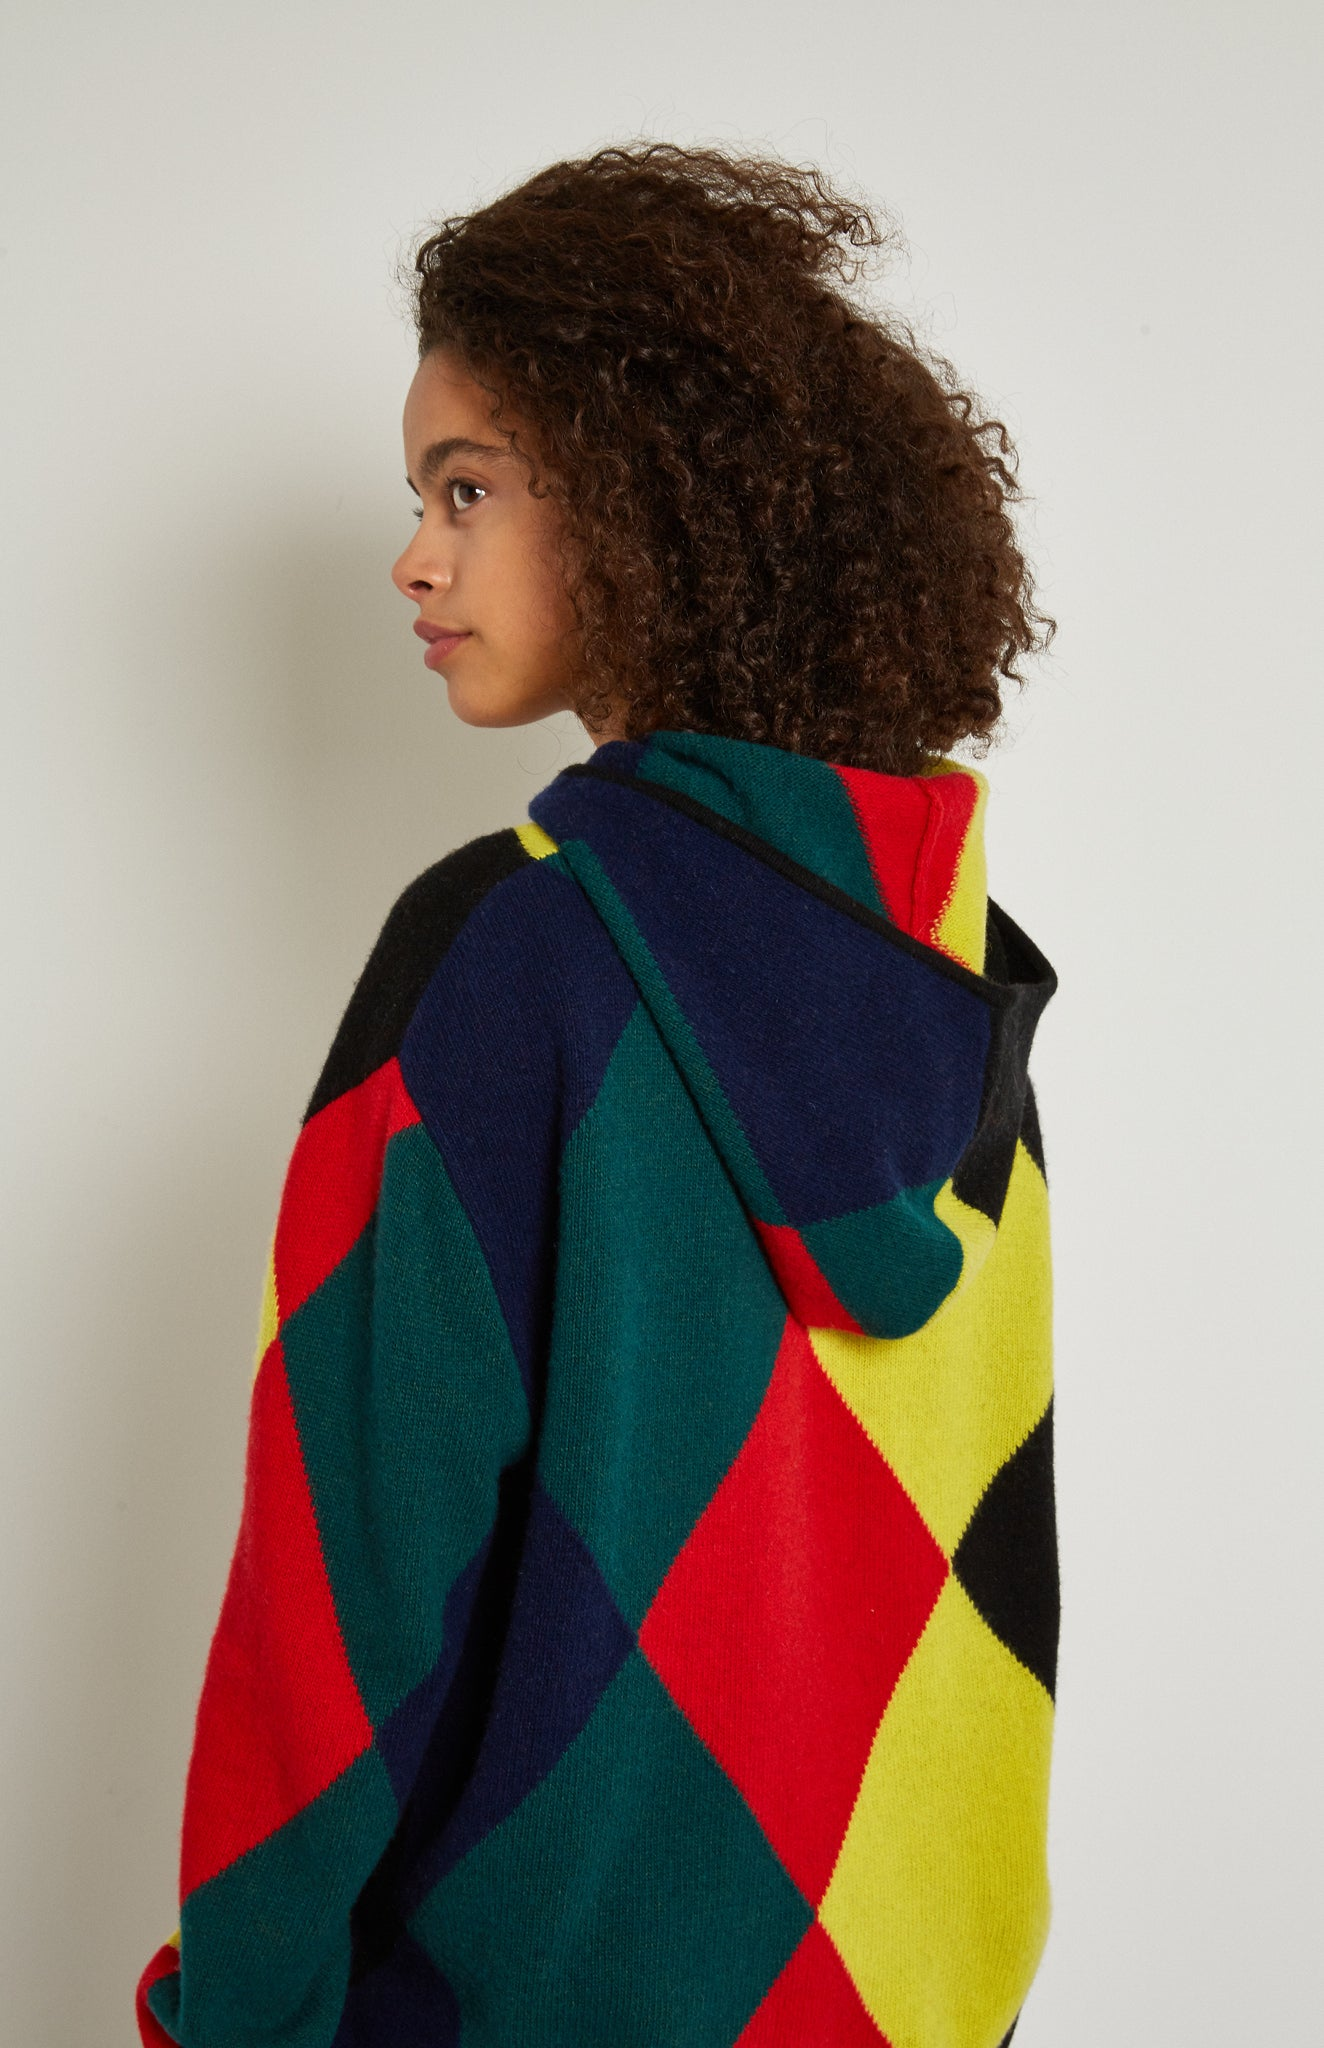 Pringle Reissued Unisex Harlequin Argyle Hoodie backshot on female